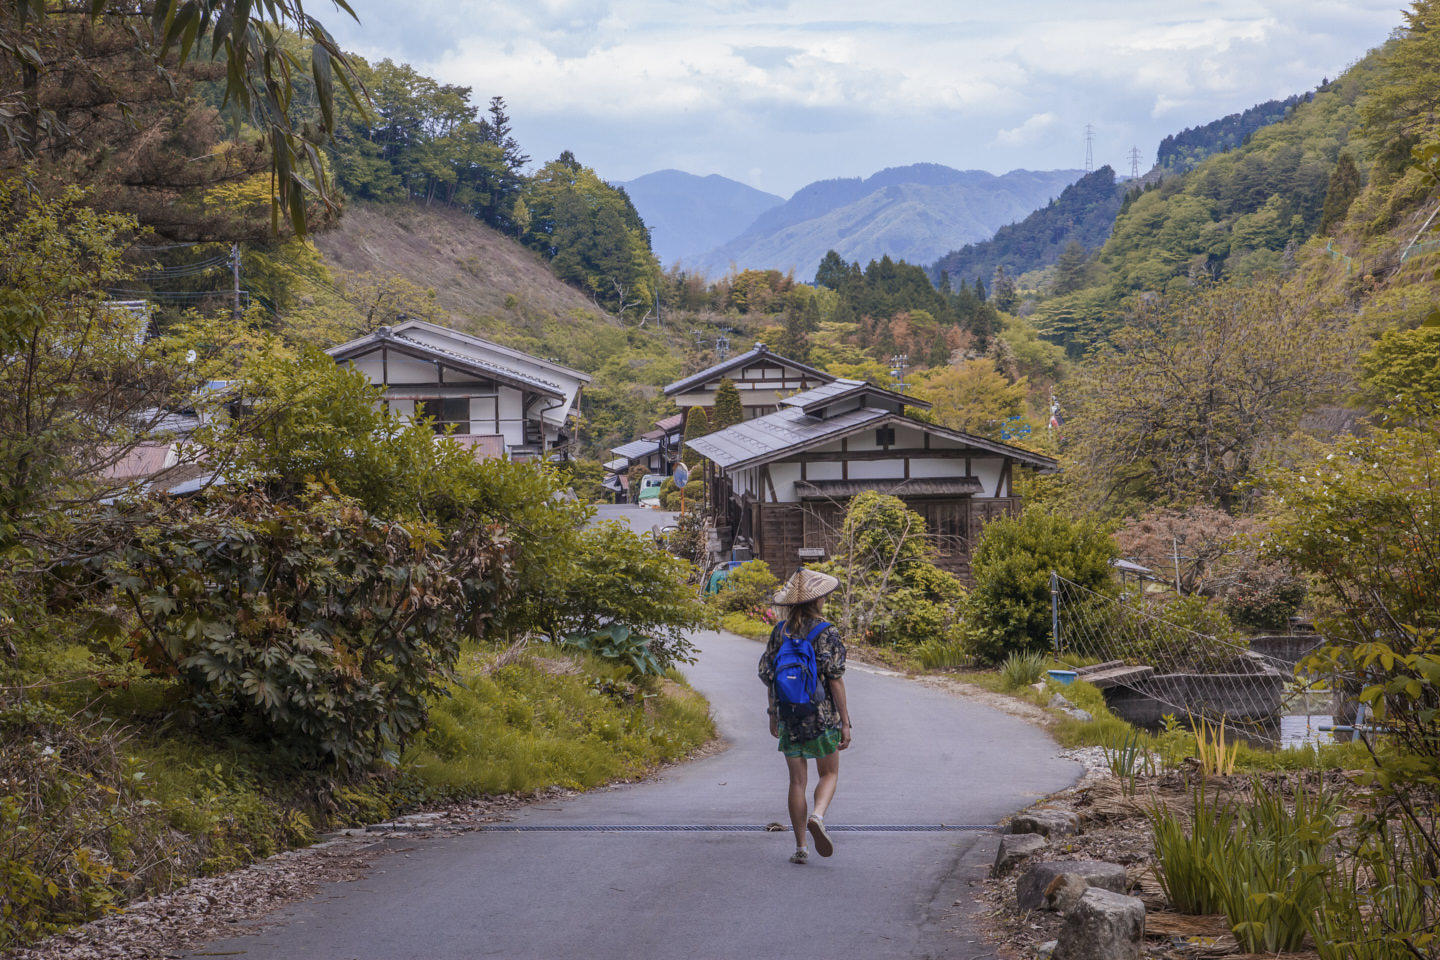 Hollie walks a particularly picturesque section of the Kiso Valley, backdropped by mountains